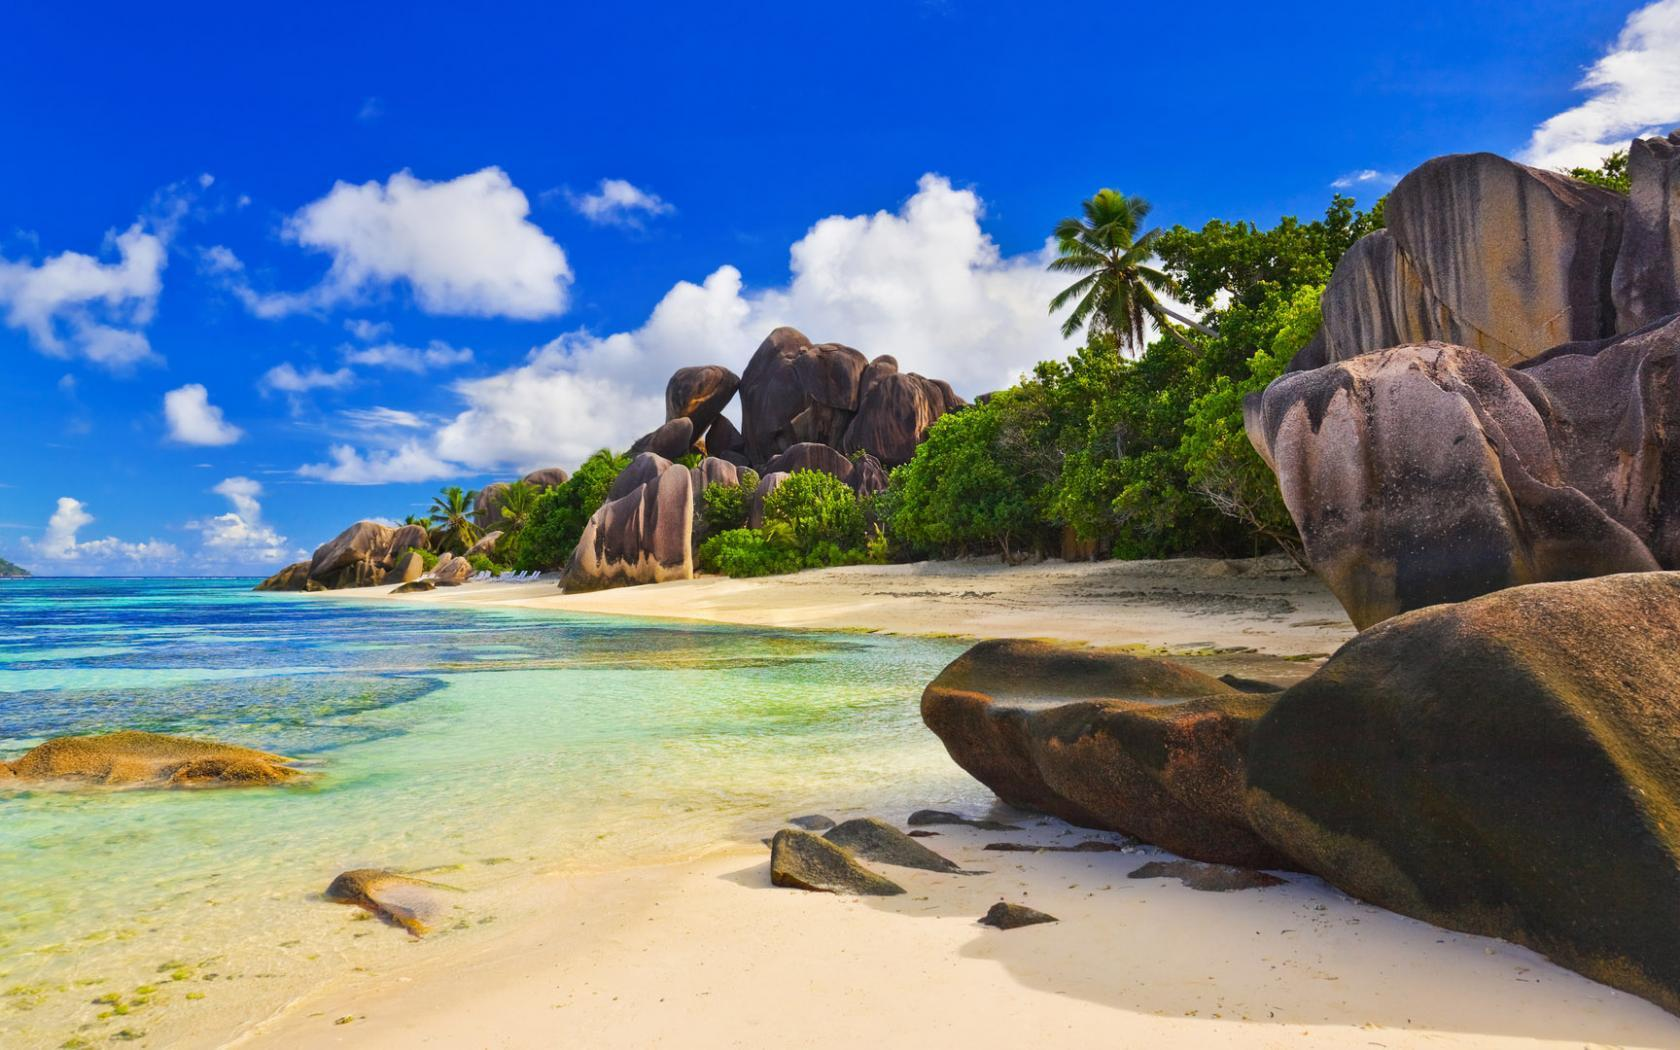 Beach Wallpaper Hd Background Wallpaper 104 HD Wallpapers ...